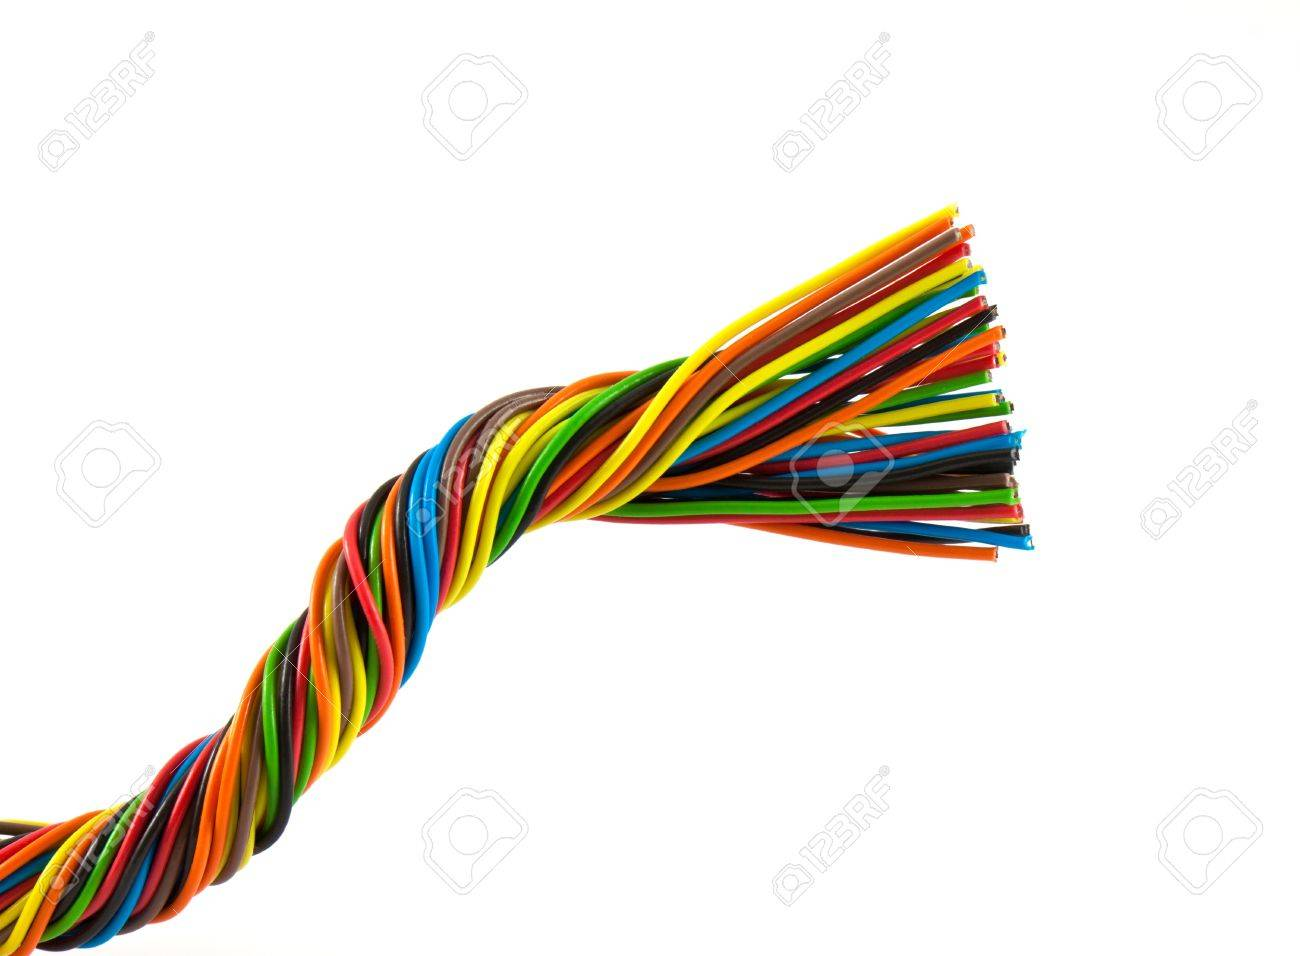 Color Wires Isolated On White Background Stock Photo, Picture And ...